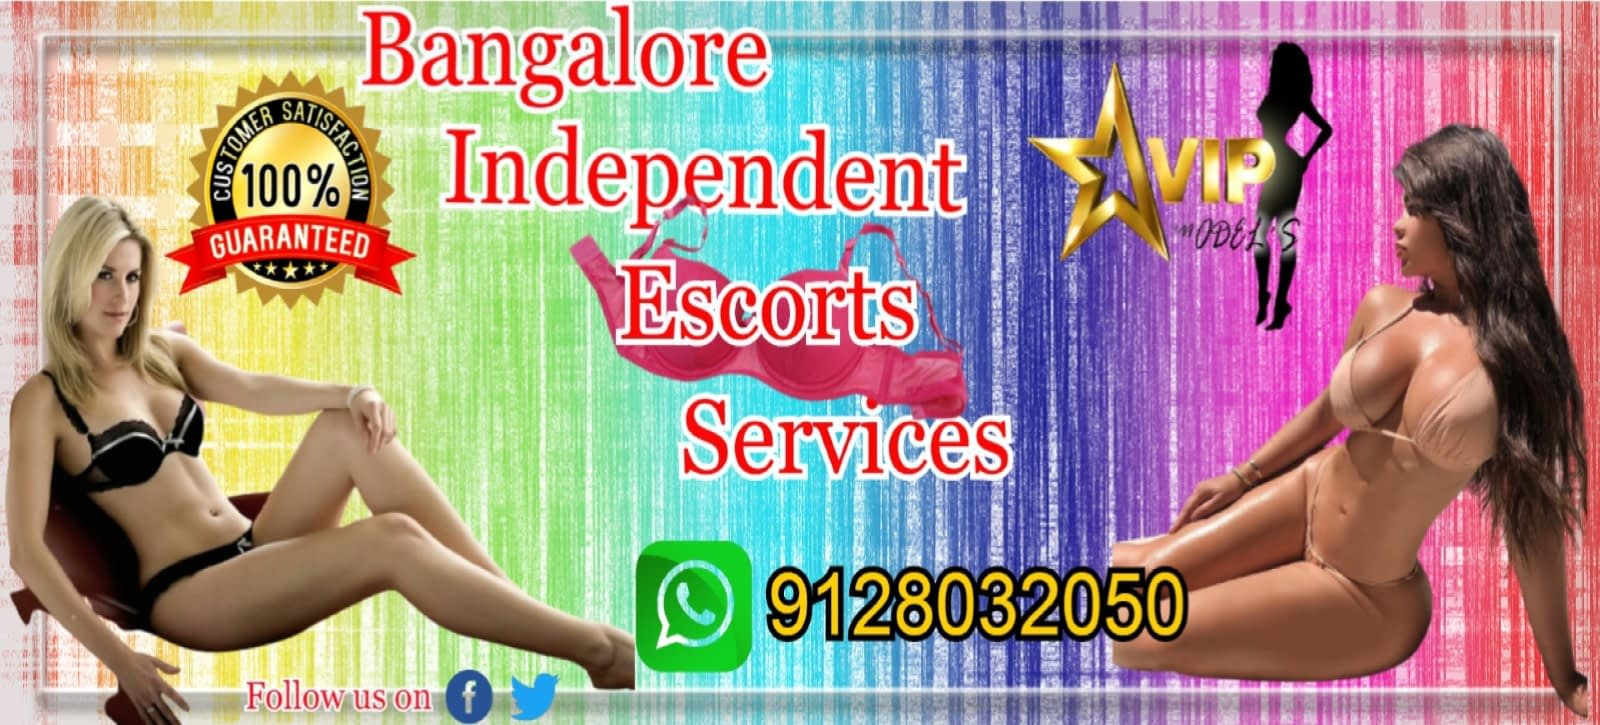 Independent escorts services